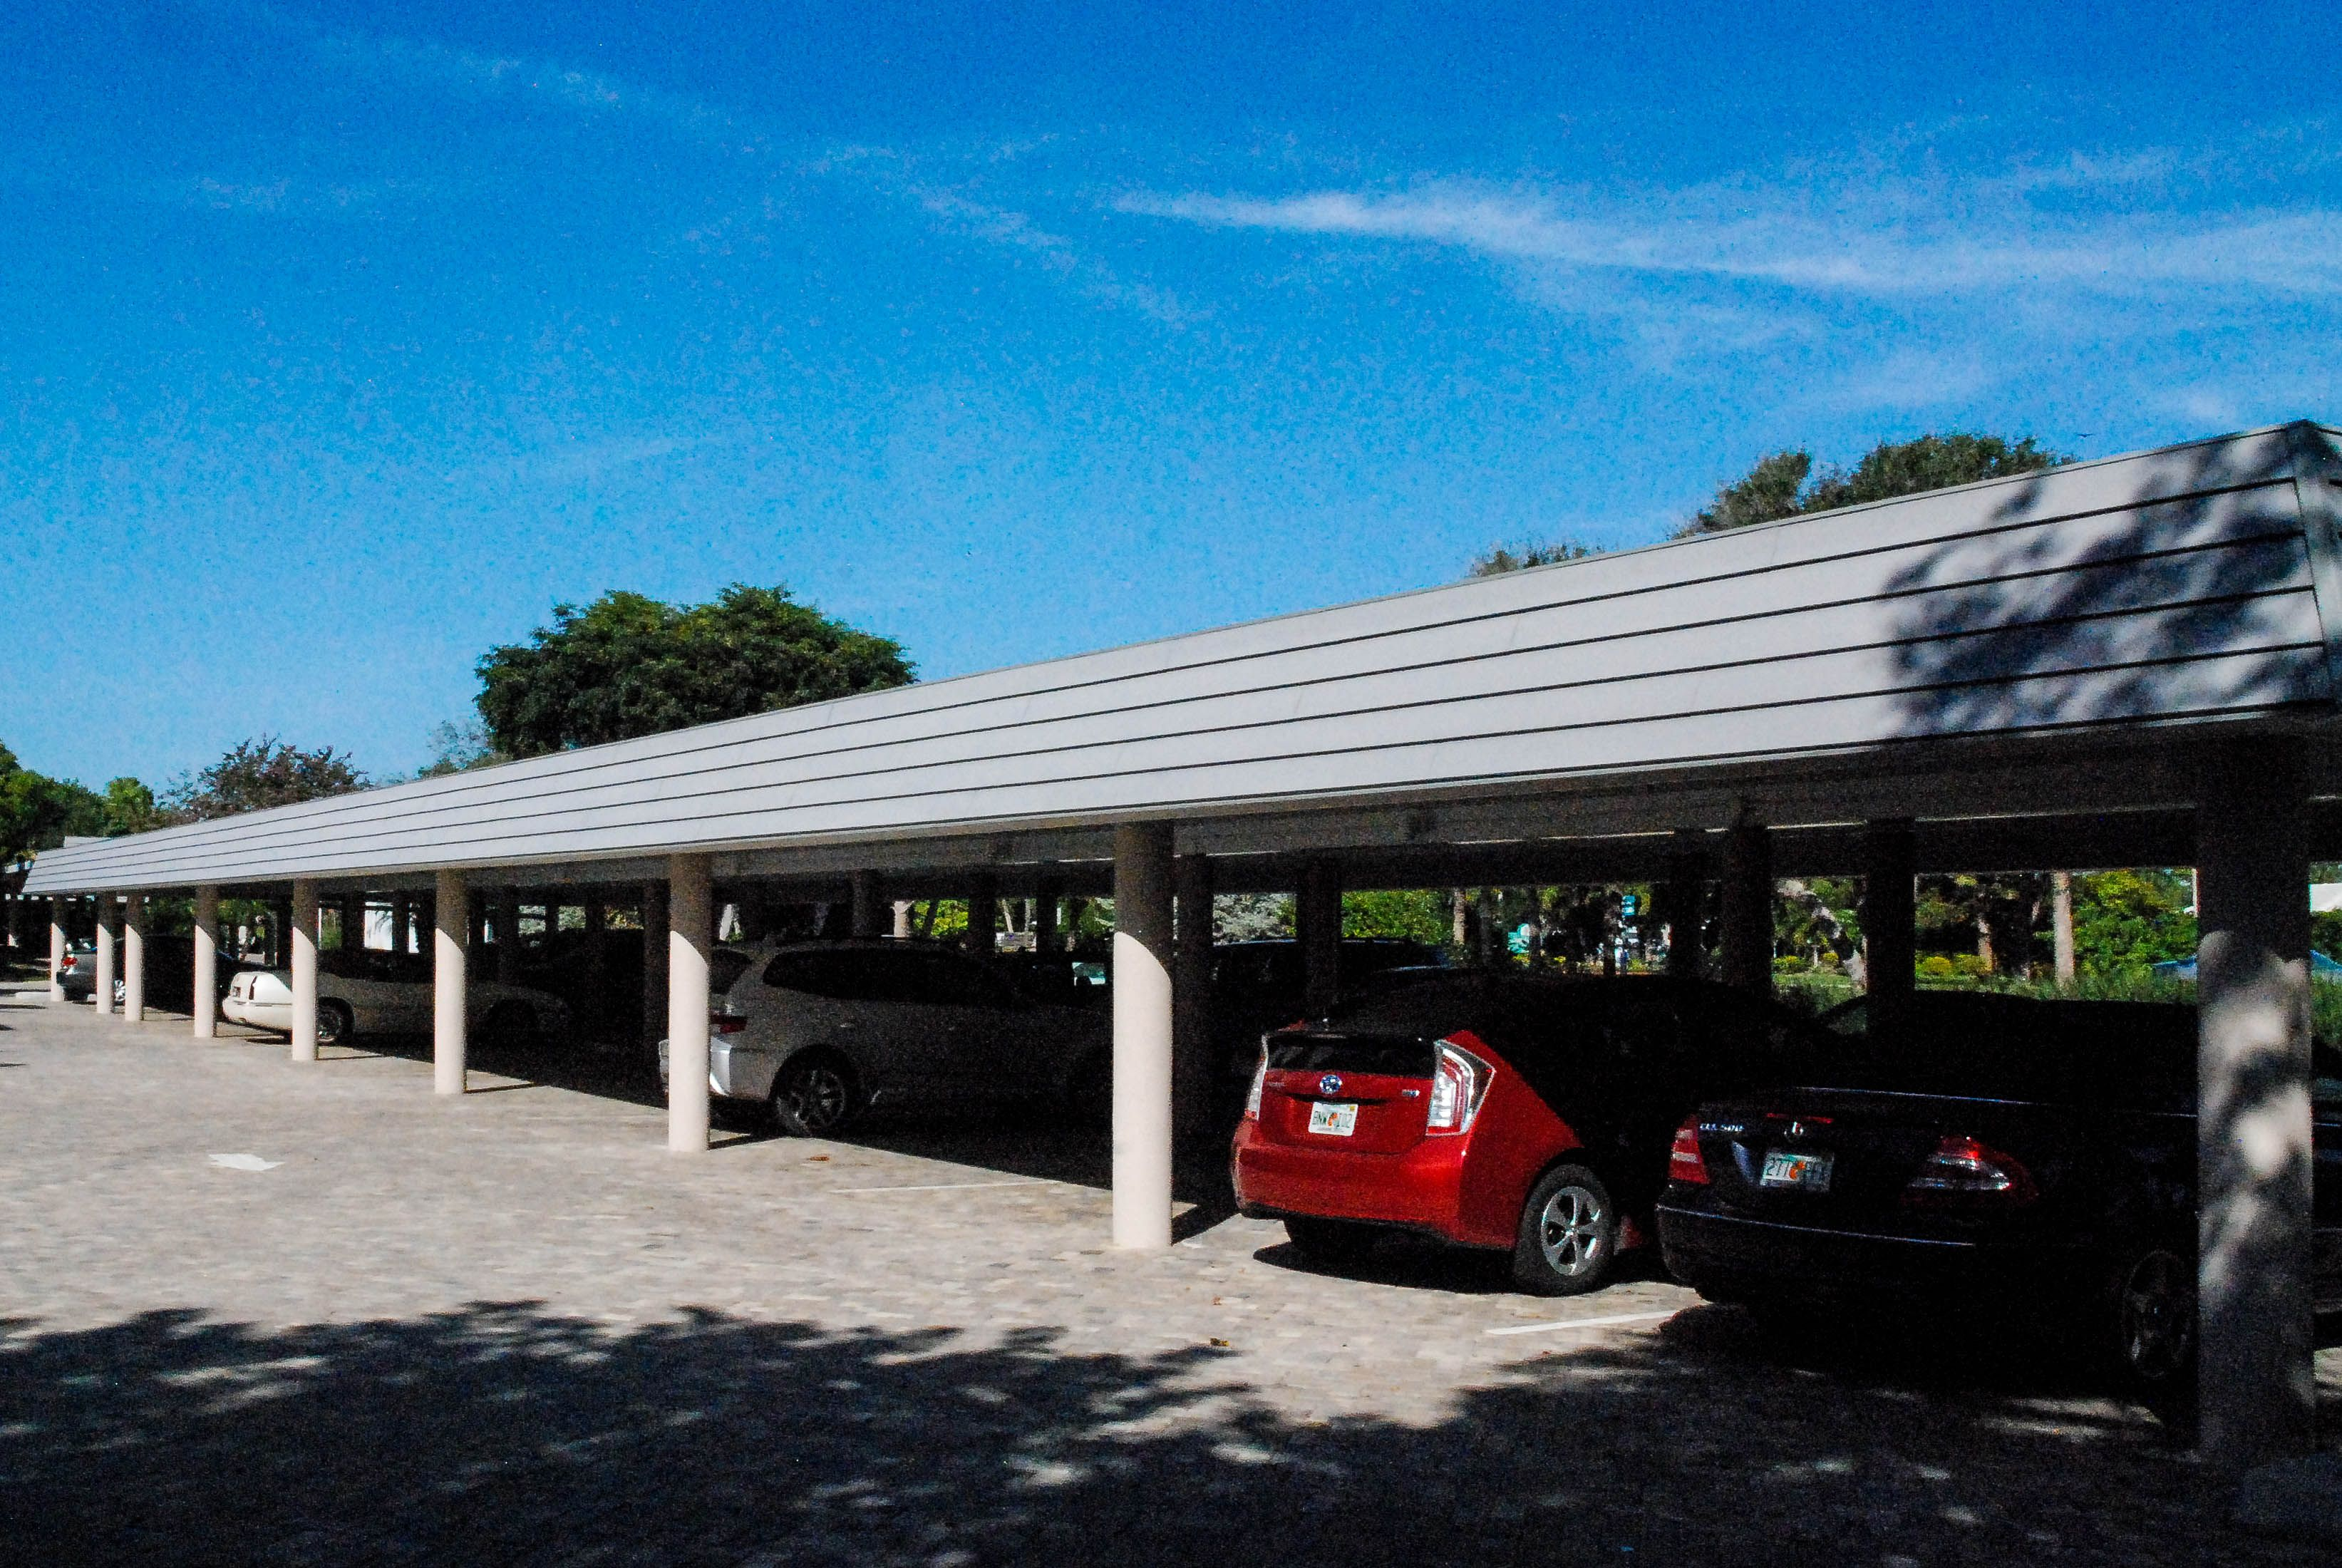 Commercial aluminum carport roof (With images) Metal